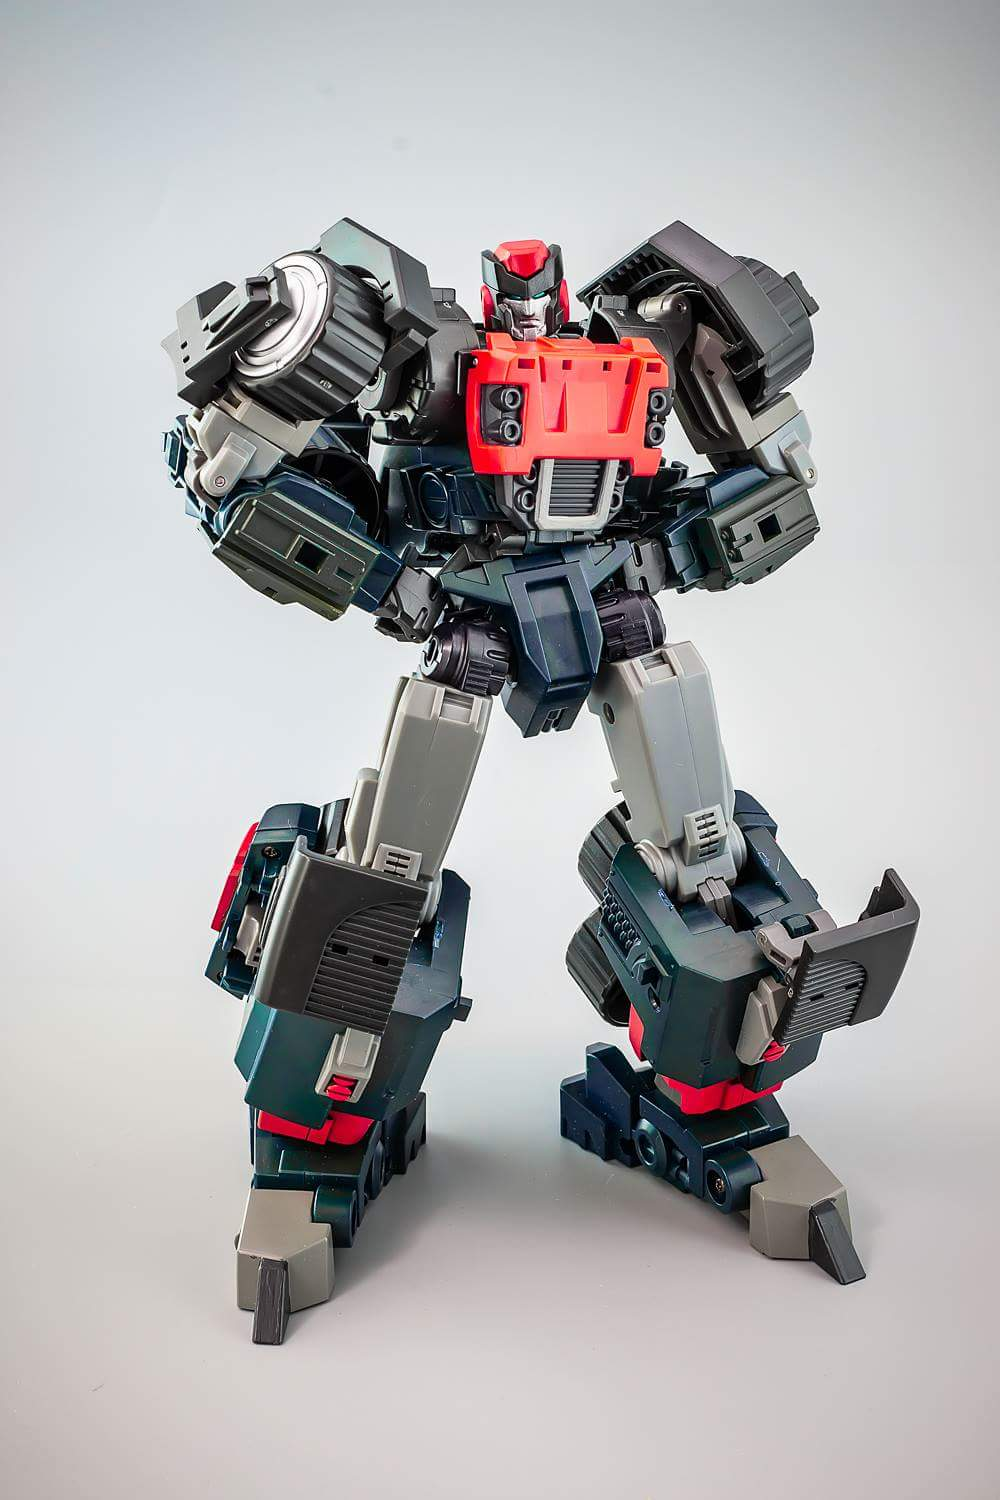 [Mastermind Creations] Produit Tiers - Reformatted  R-34 Cylindrus - aka Roller/Roulo des BD IDW FqLCf85A_o